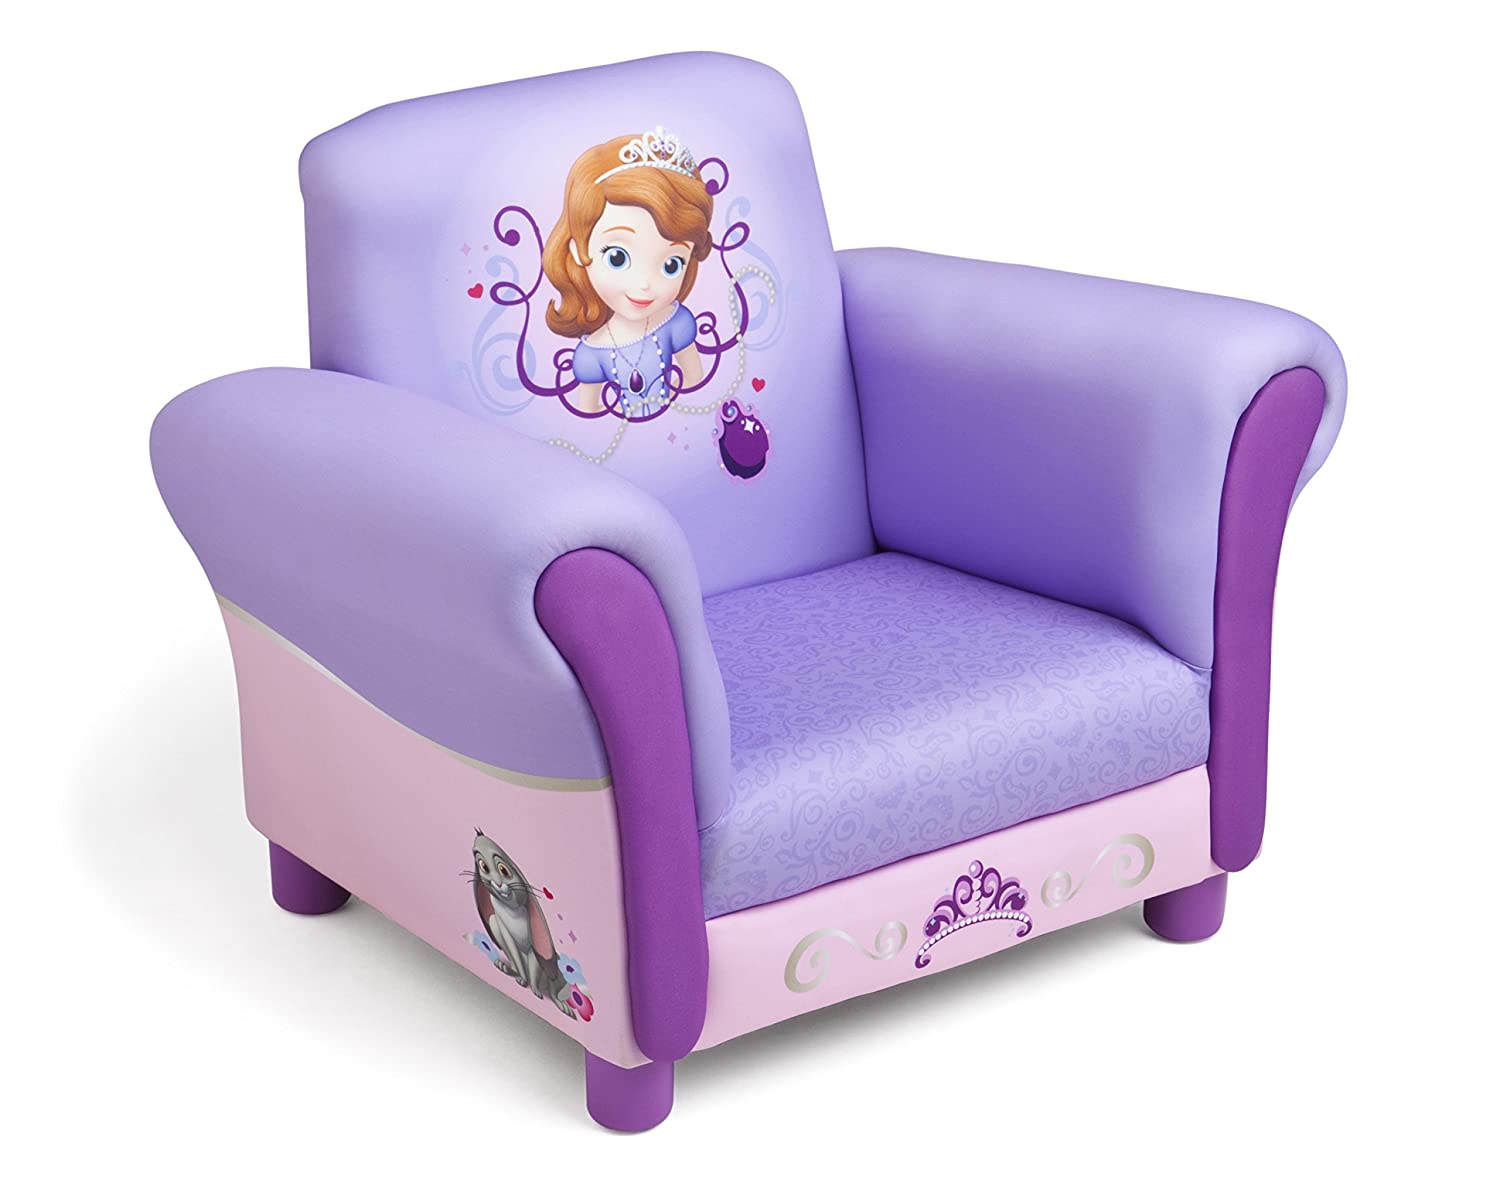 Amazon.com Disney Sofia the First Upholstered Chair by Delta Kitchen u0026 Dining  sc 1 st  Amazon.com : sofia the first recliner - islam-shia.org